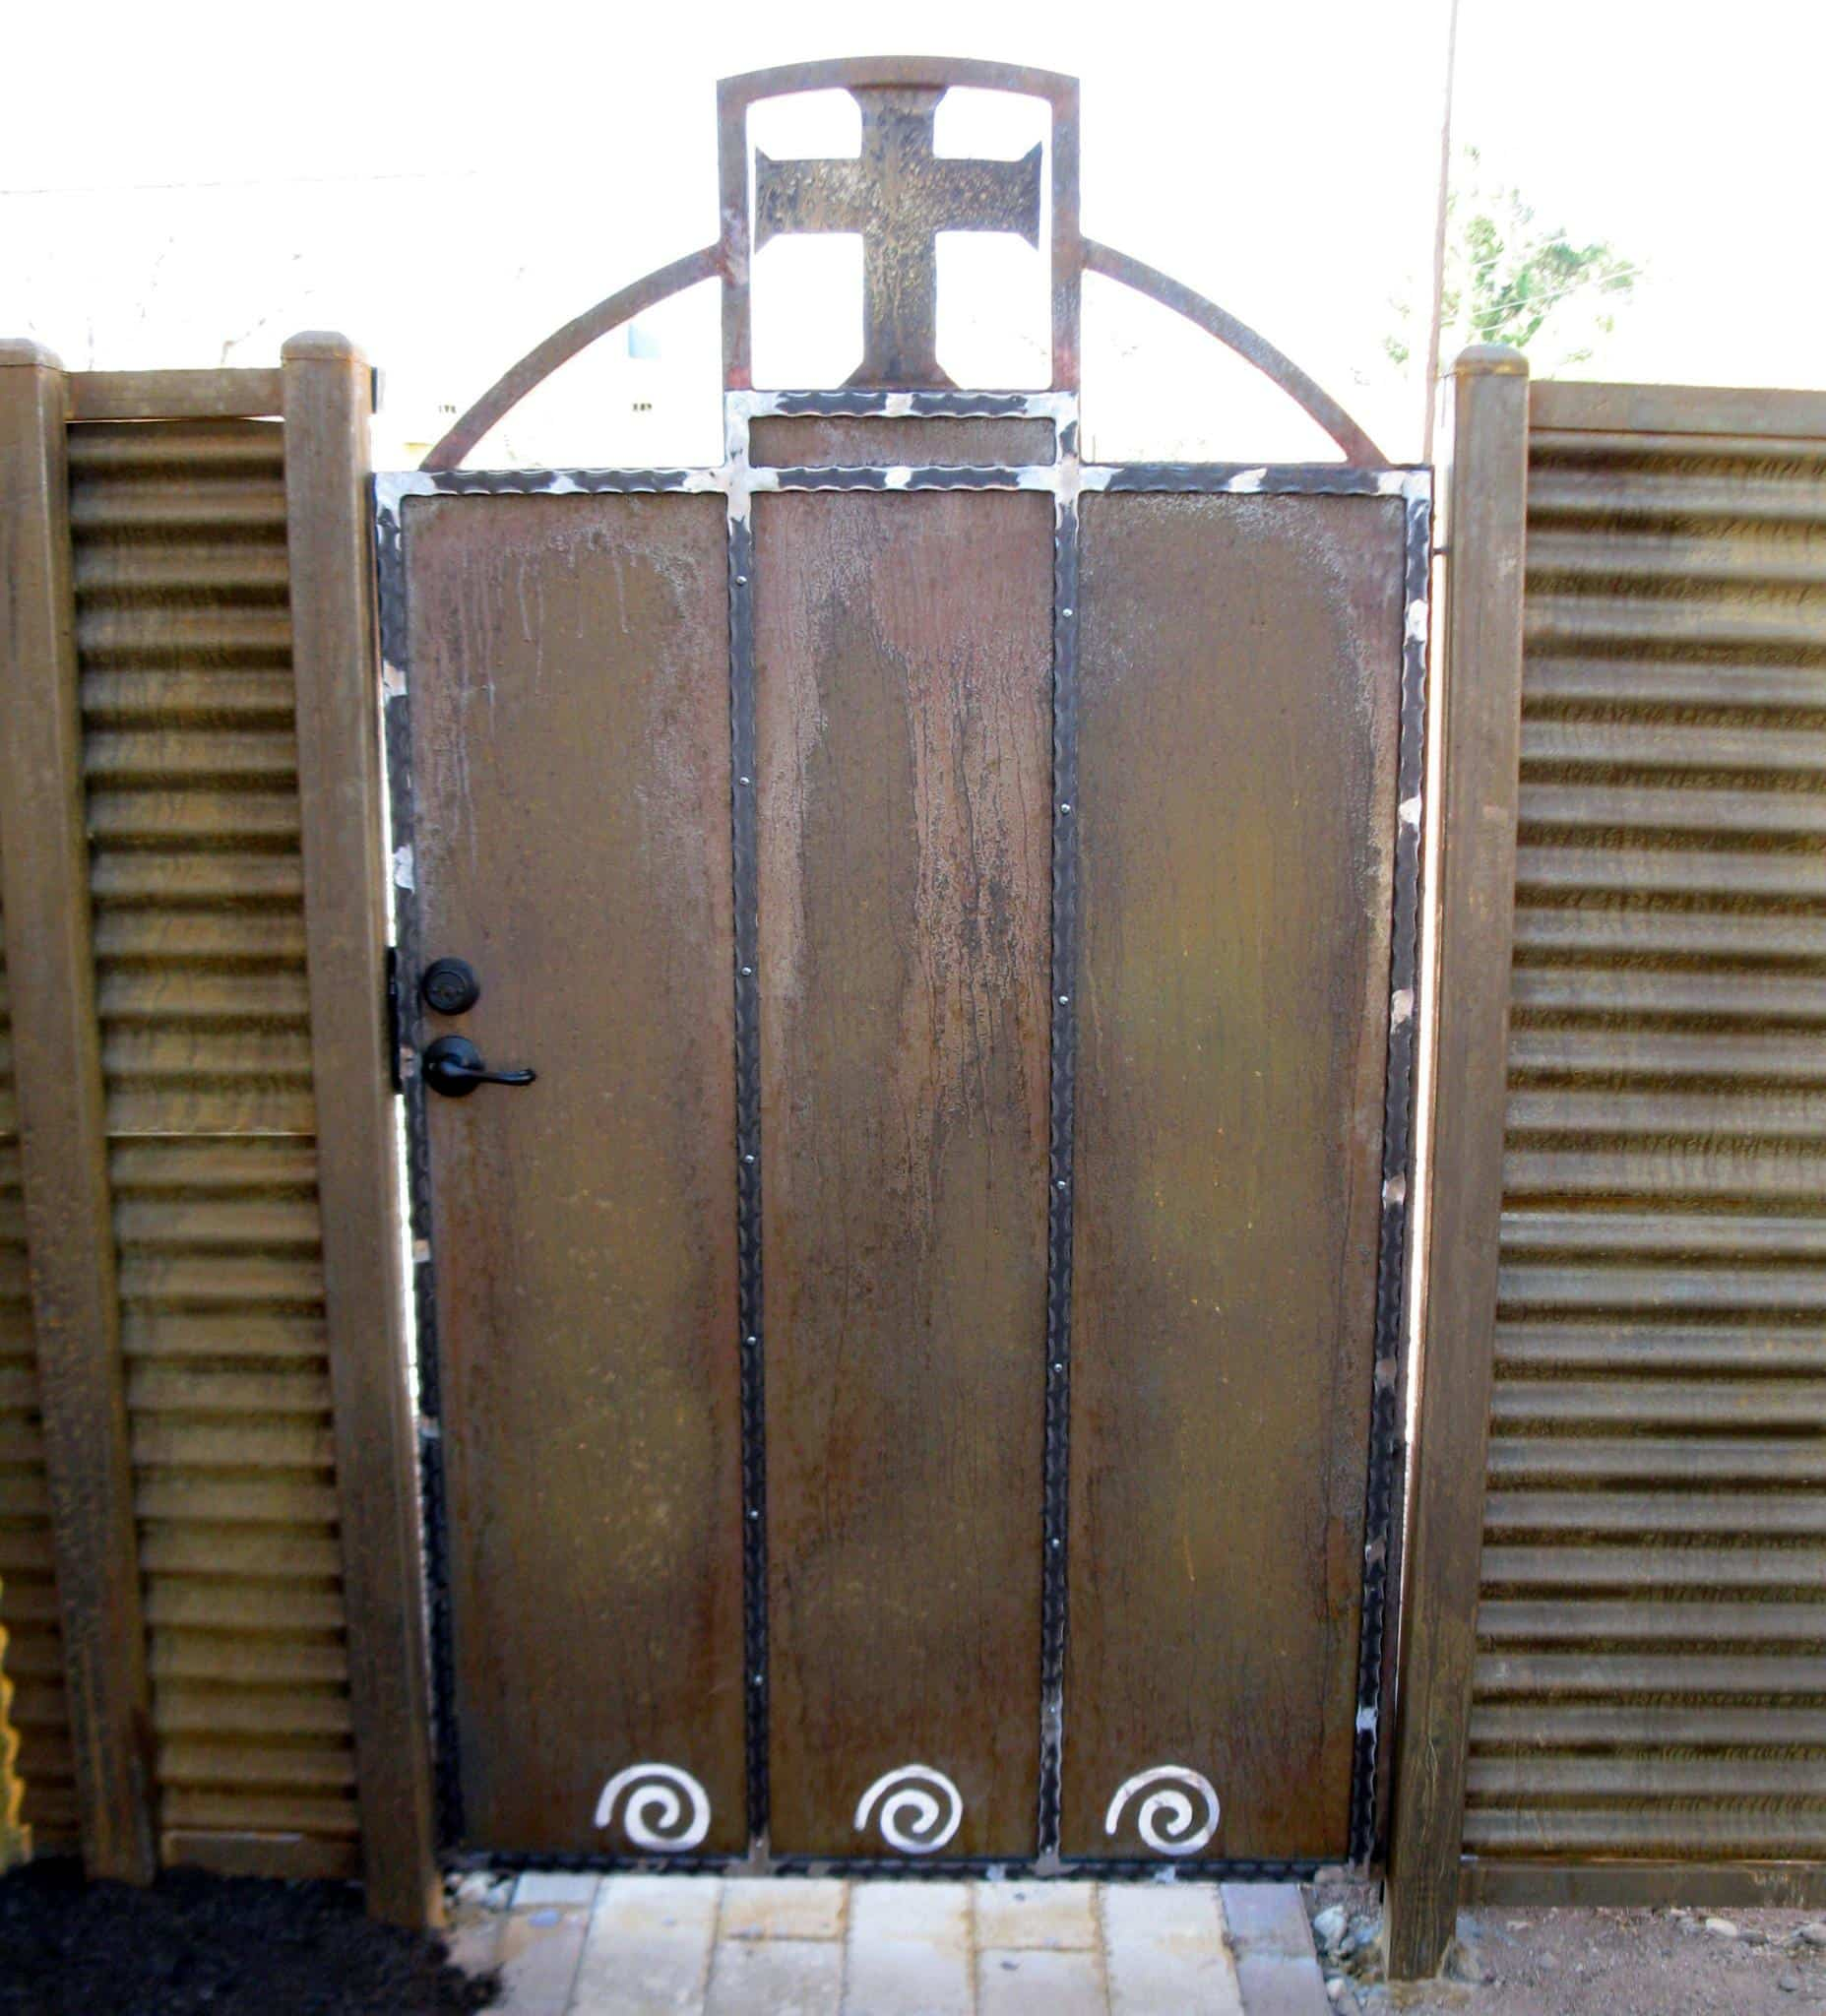 Corrugated Steel Gate | Rusted Metal Gate | Mission Style Rusted Gate